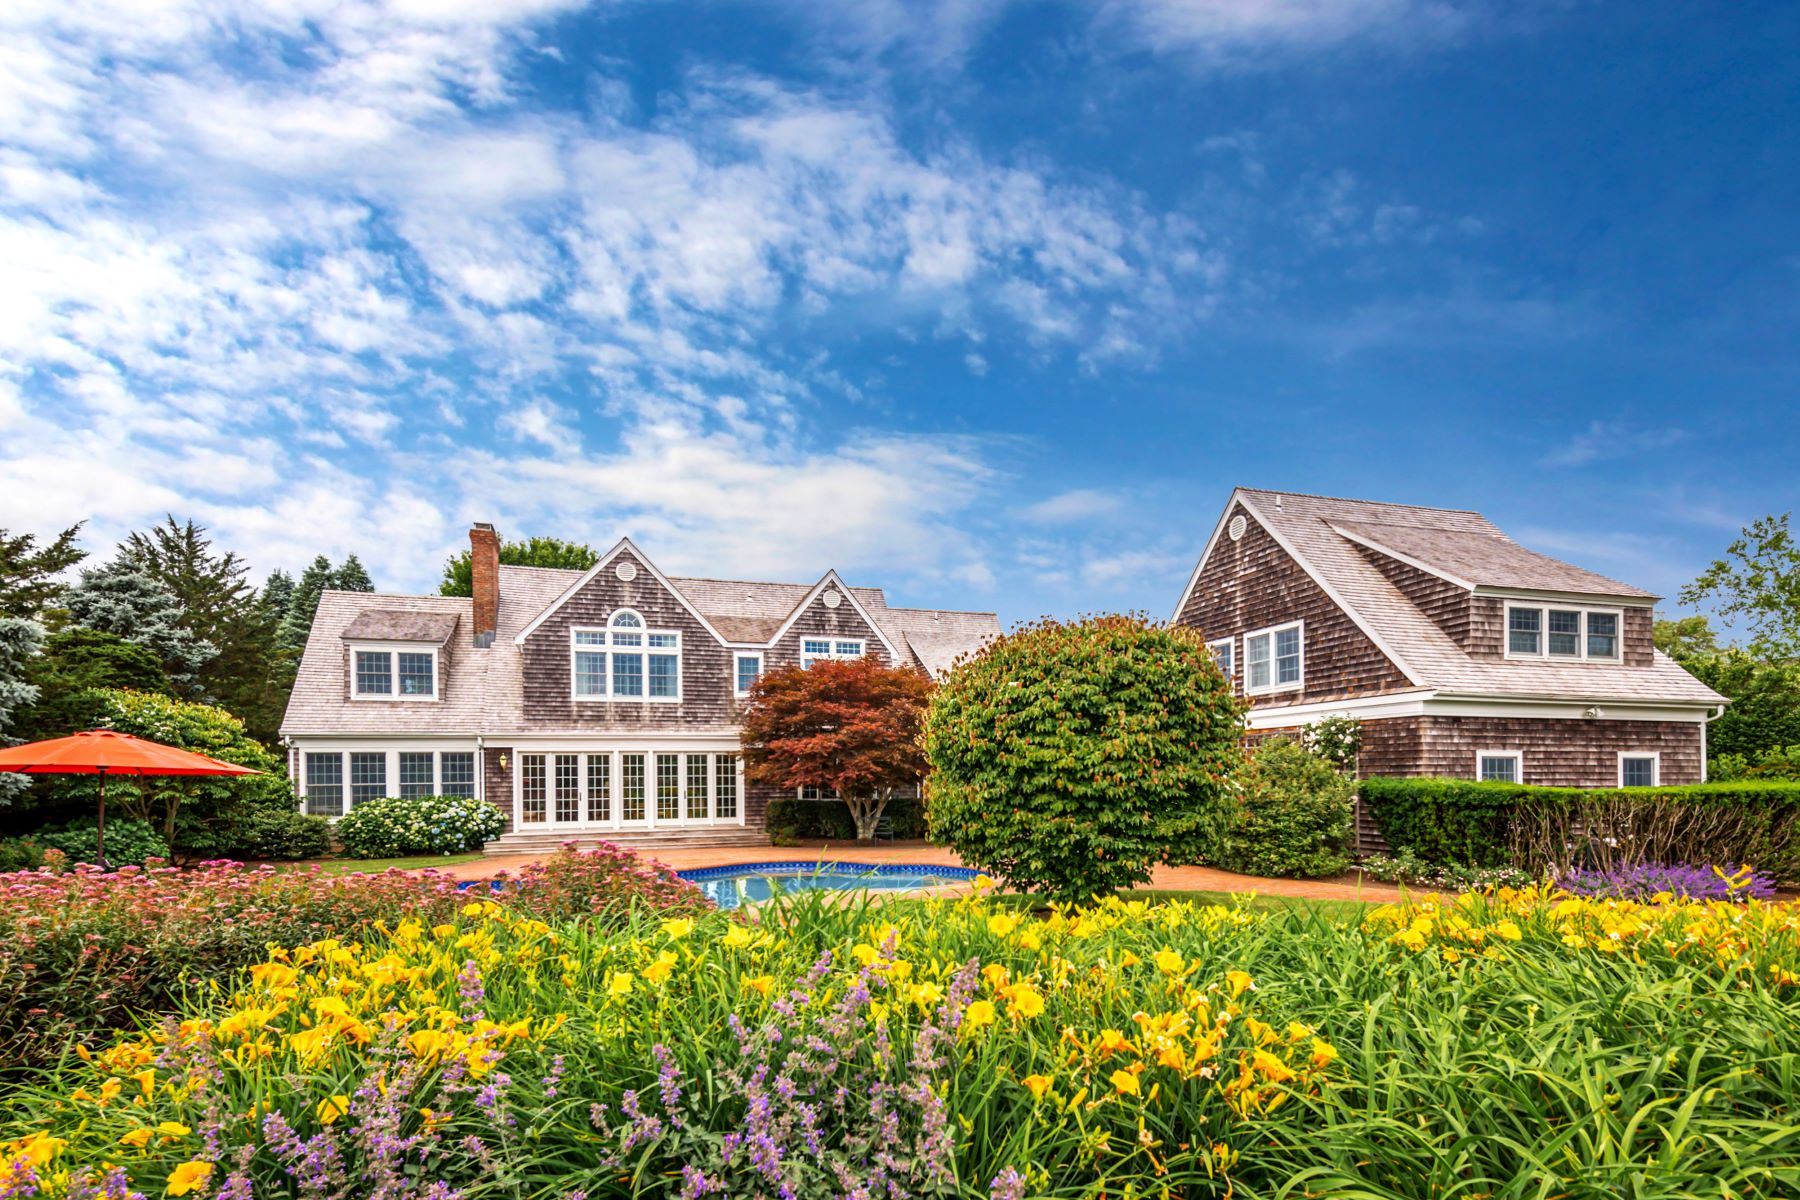 Single Family Homes for Sale at Quintessential Summer Get Away 101 Farm Court Sagaponack, New York 11962 United States